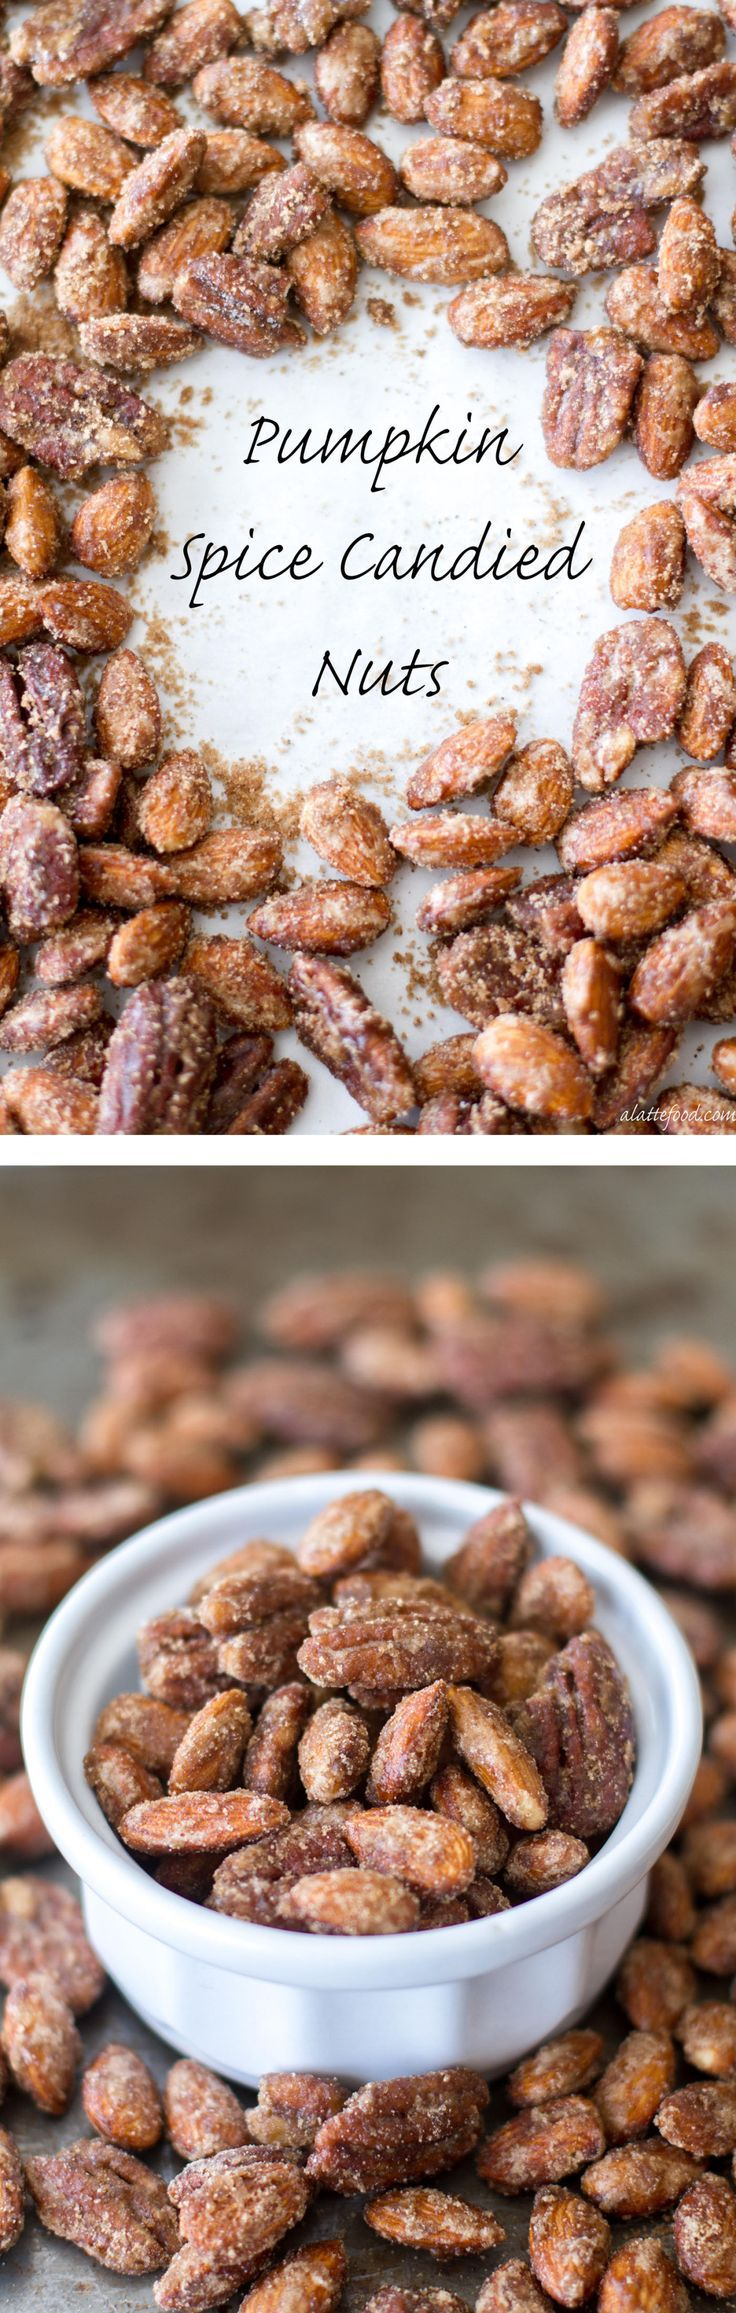 These sugared nuts are candied with a blend of pumpkin pie spice, white sugar, and brown sugar to make the most irresistible snack! | www.alattefood.com